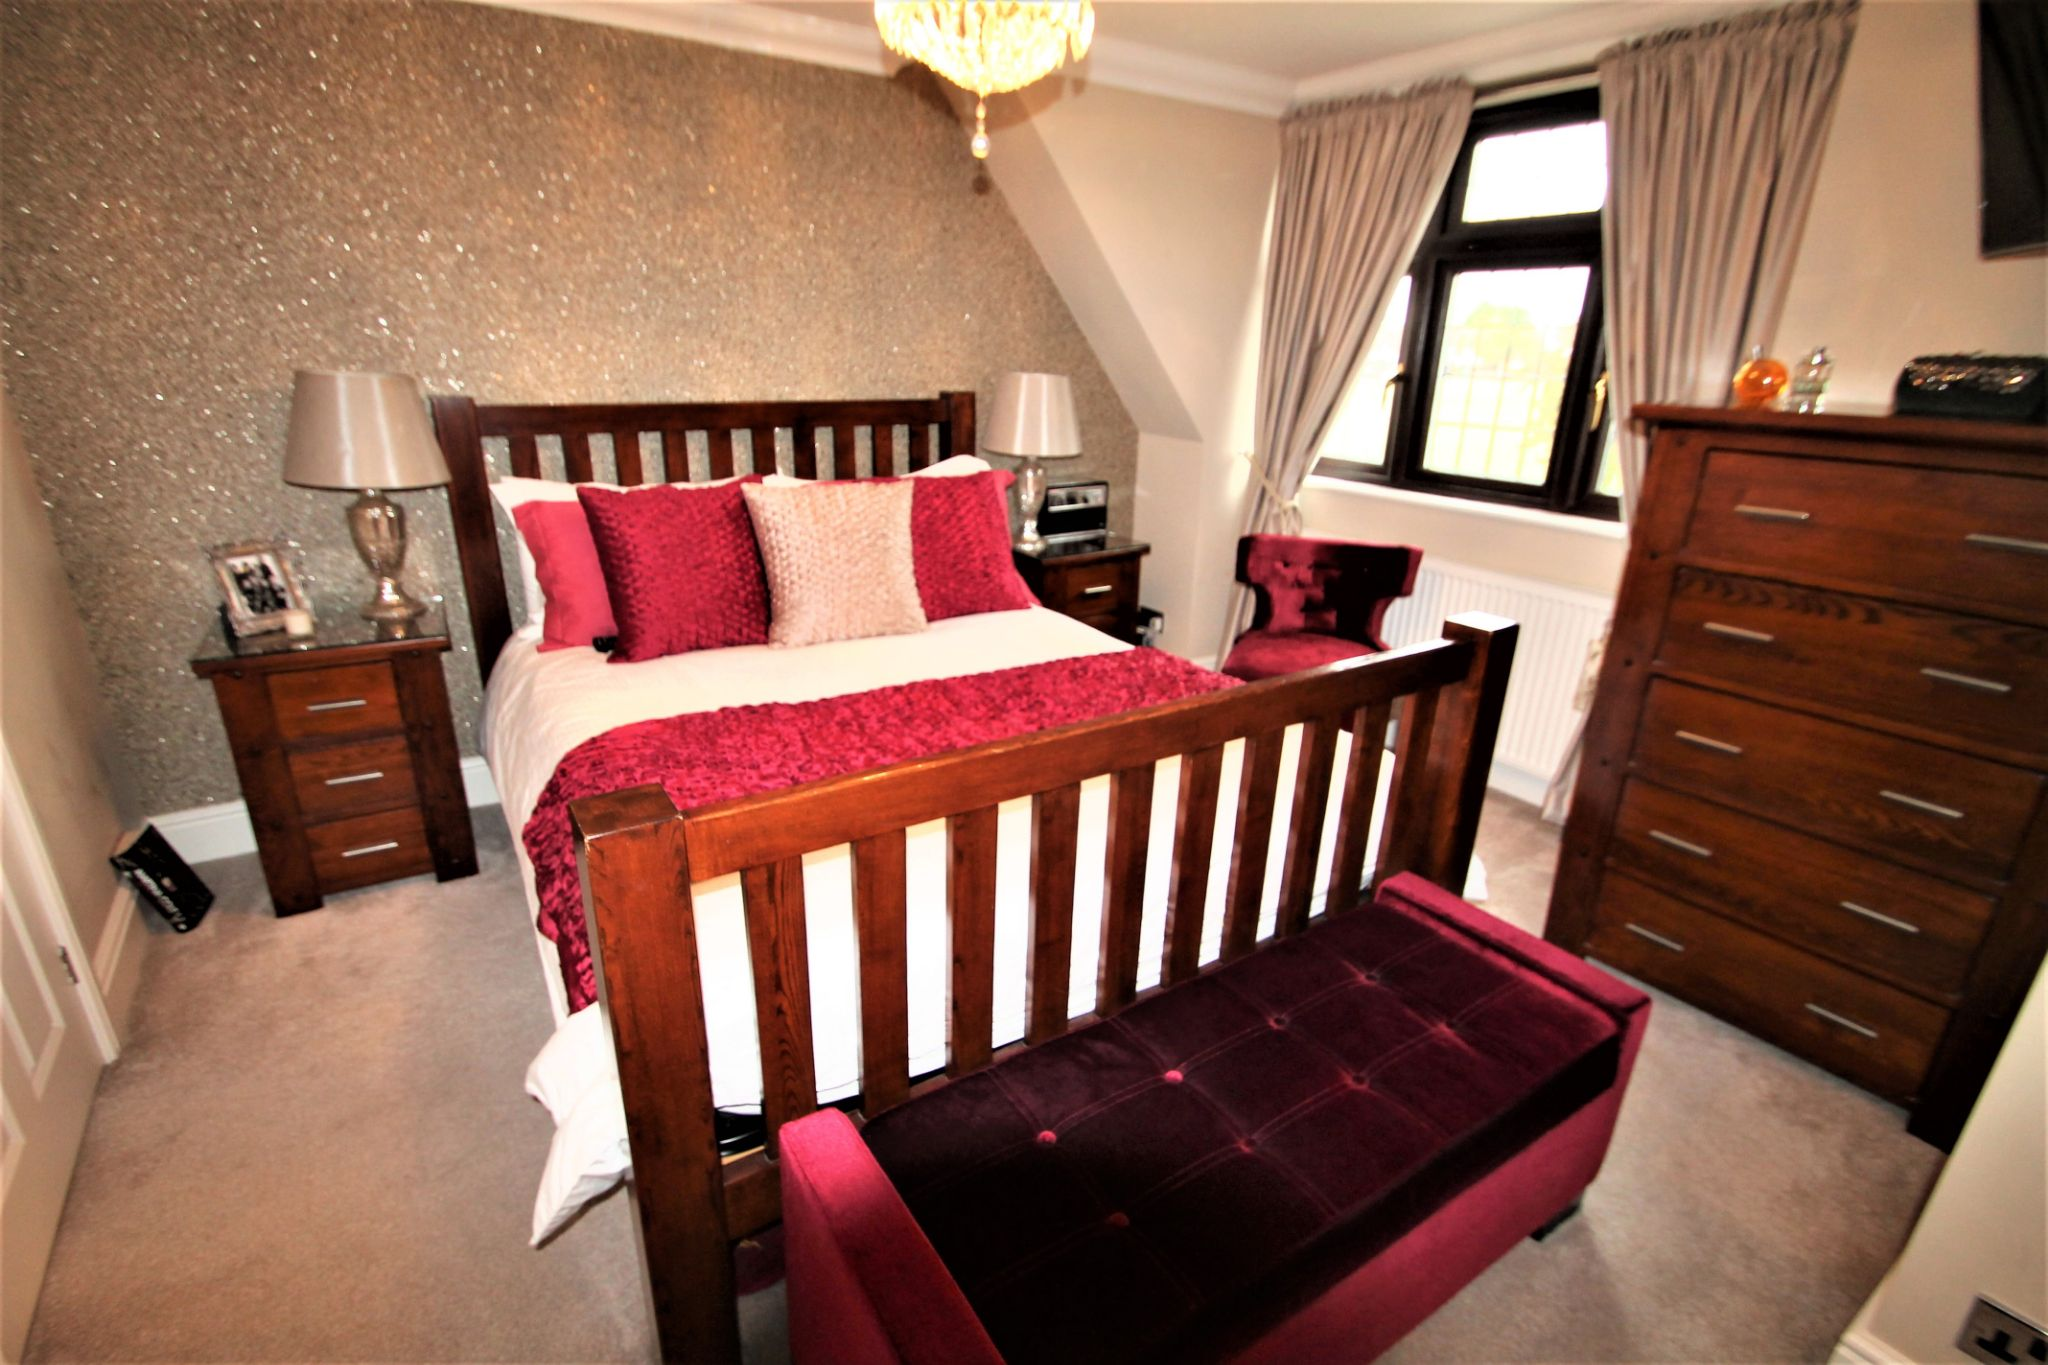 5 Bedroom Detached House For Sale - Master Bedroom